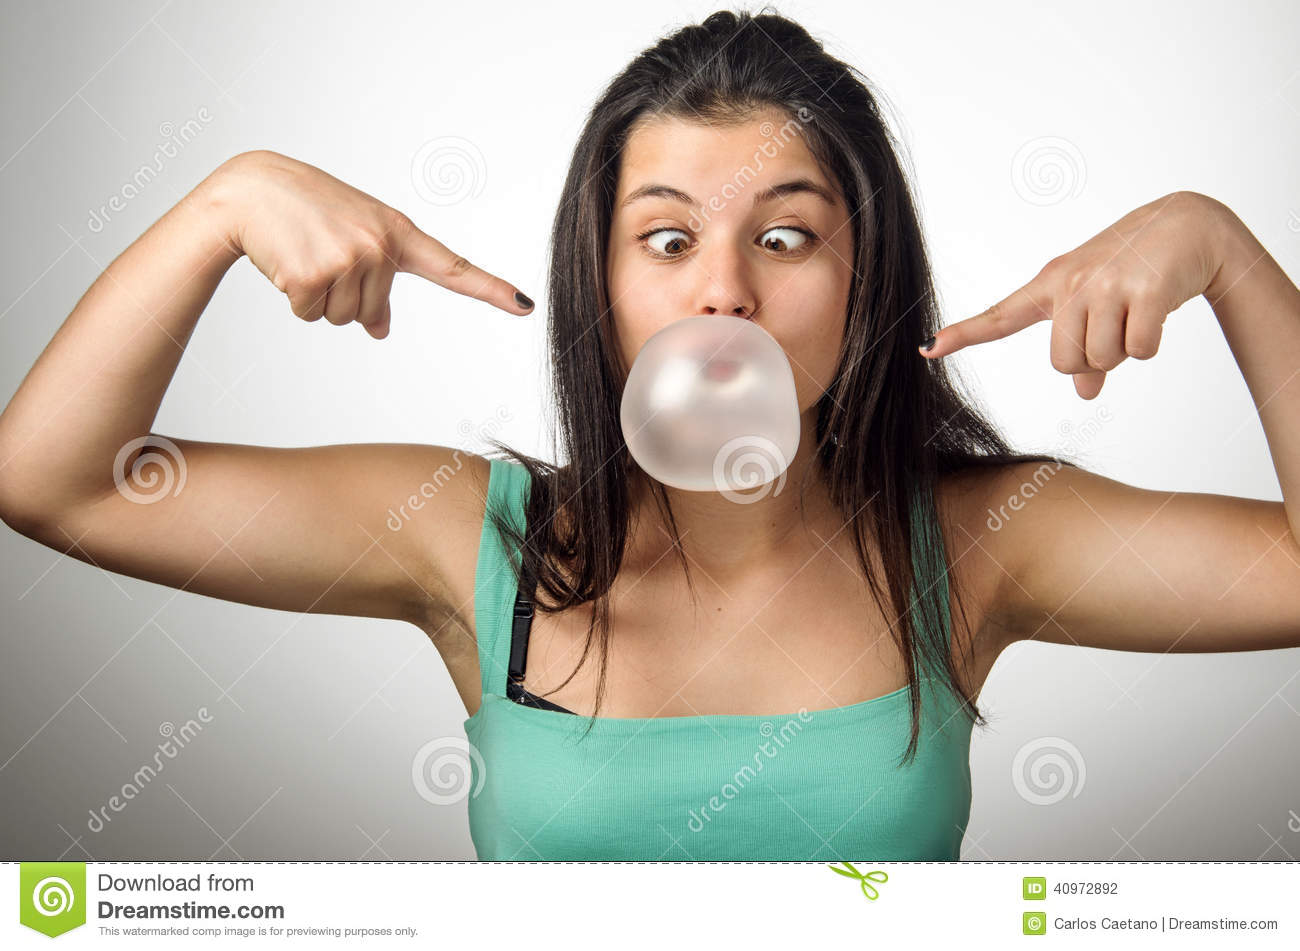 Download Chewing Gum Girl stock photo. Image of chewing, cool - 40972892